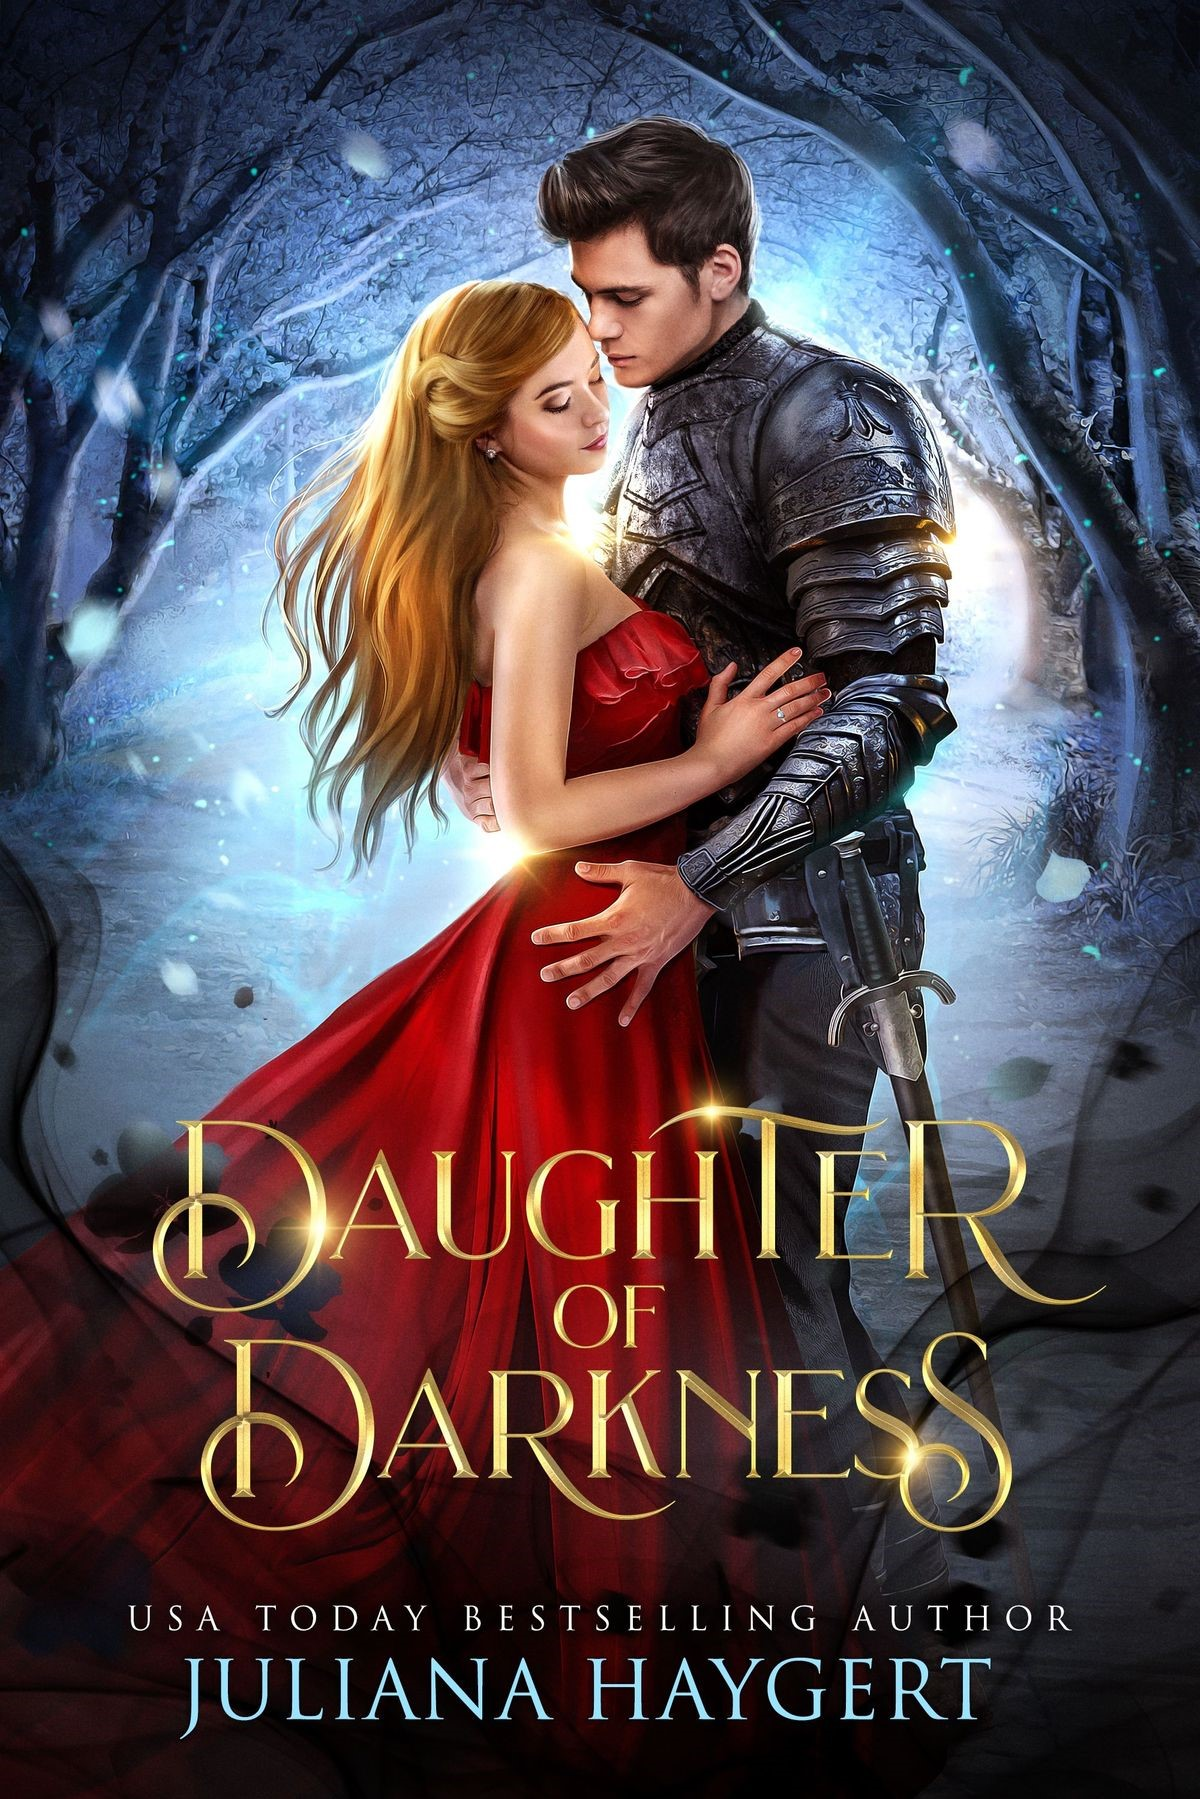 Daughter of Darkness – Juliana Haygert